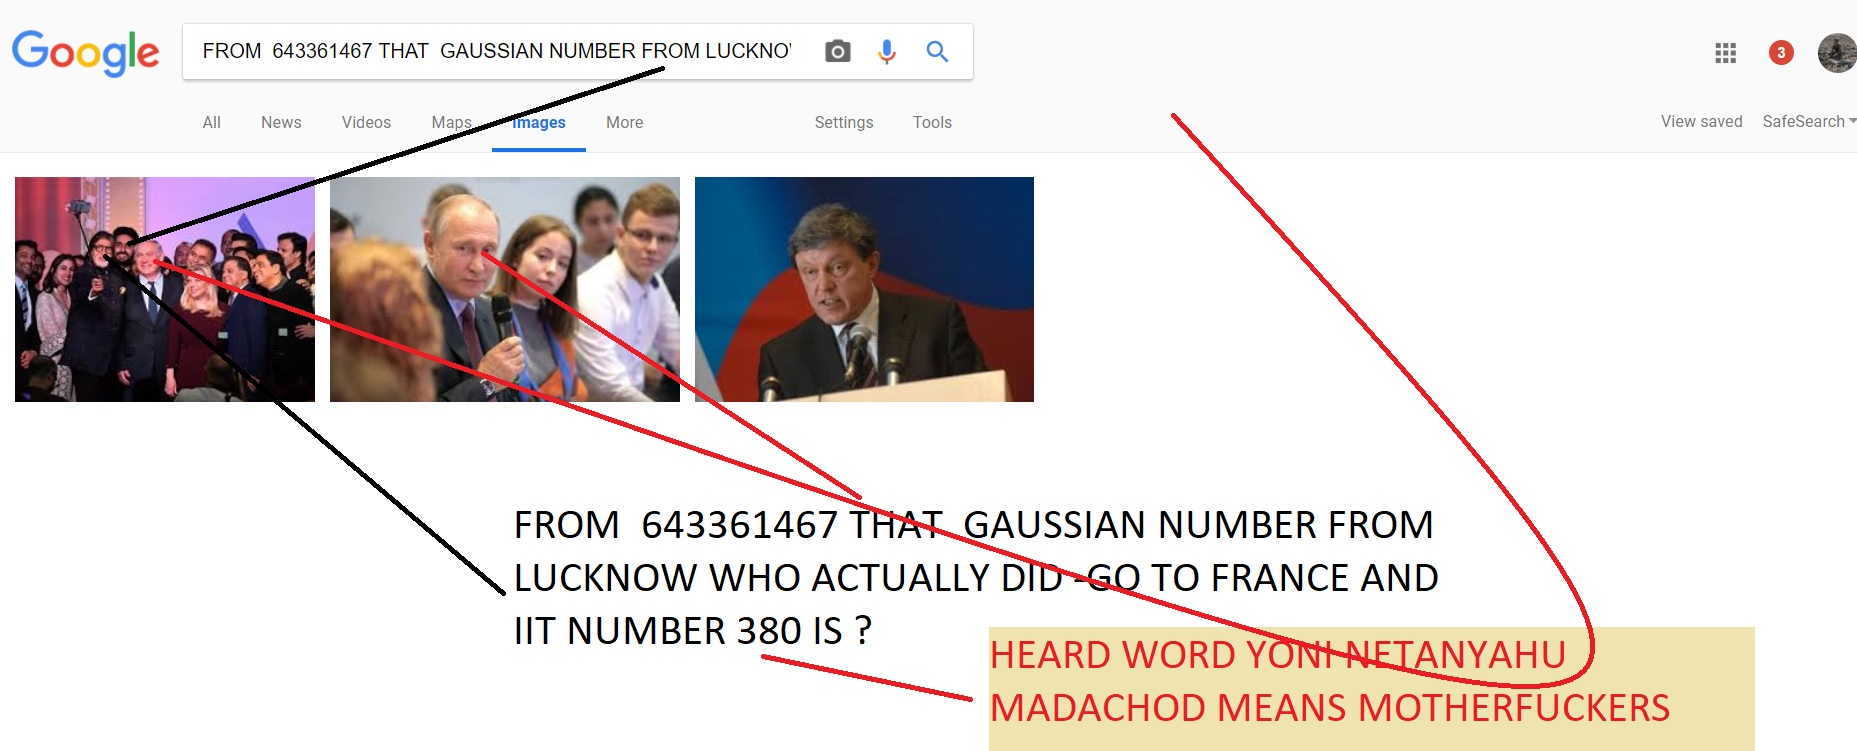 FROM 643361467 THAT GAUSSIAN NUMBER FROM LUCKNOW WHO ACTUALLY DID -GO TO FRANCE AND IIT NUMBER 380 IS